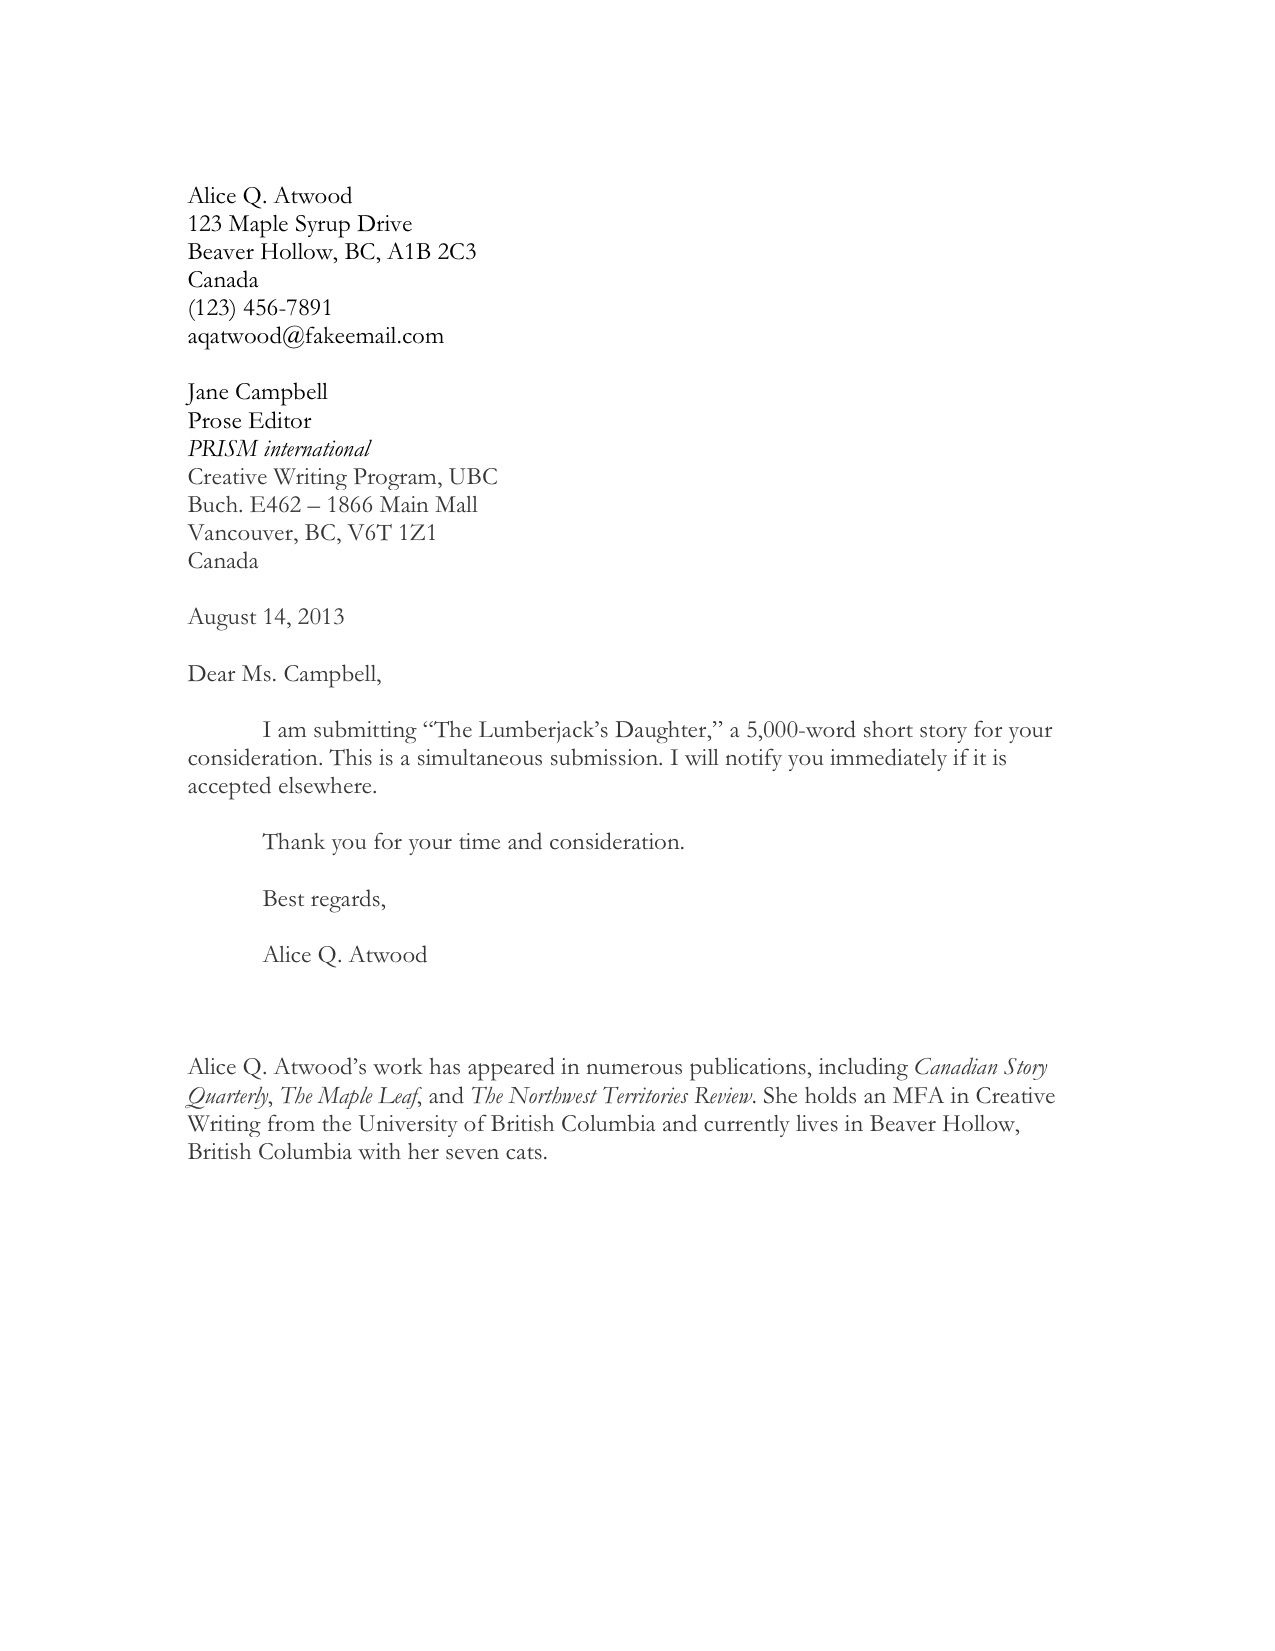 human resource specialist cover letter sample edit hr covering my perfect cover letter using laptop - Examples Of Writing A Cover Letter